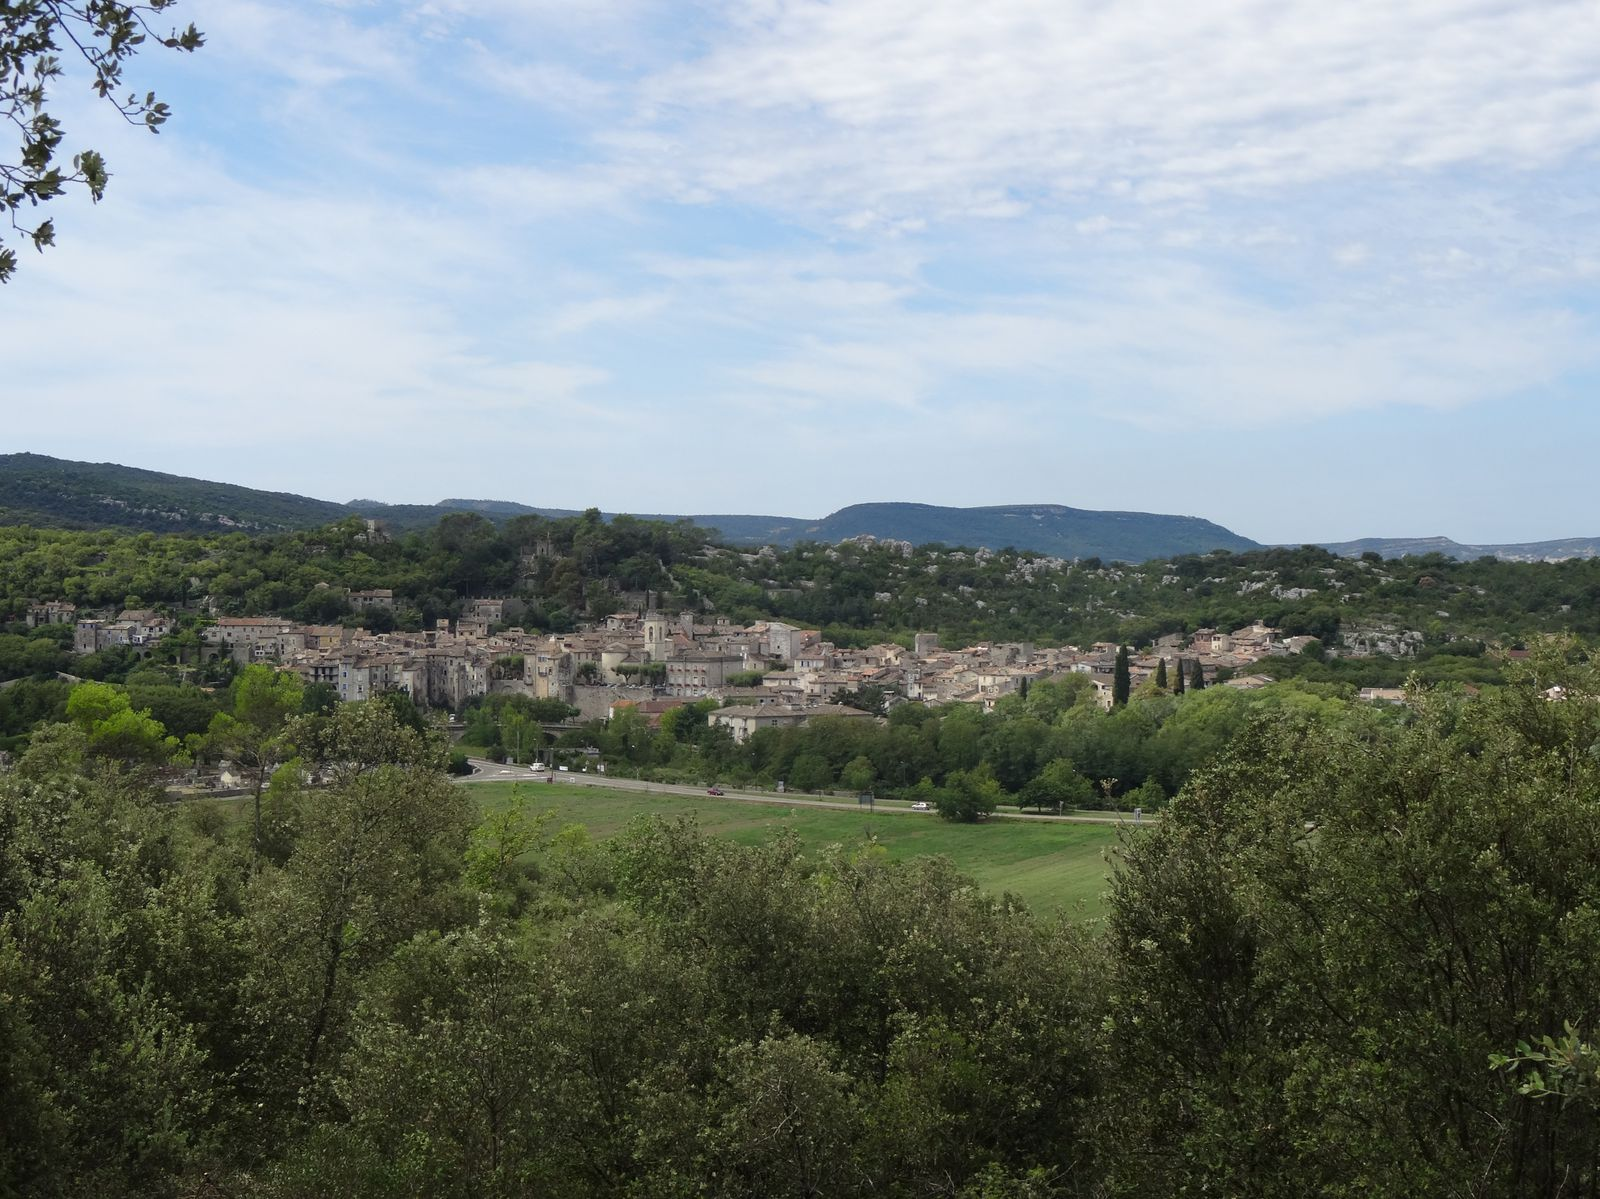 Album - 119. Roadtrip 2014 Les Cevennes